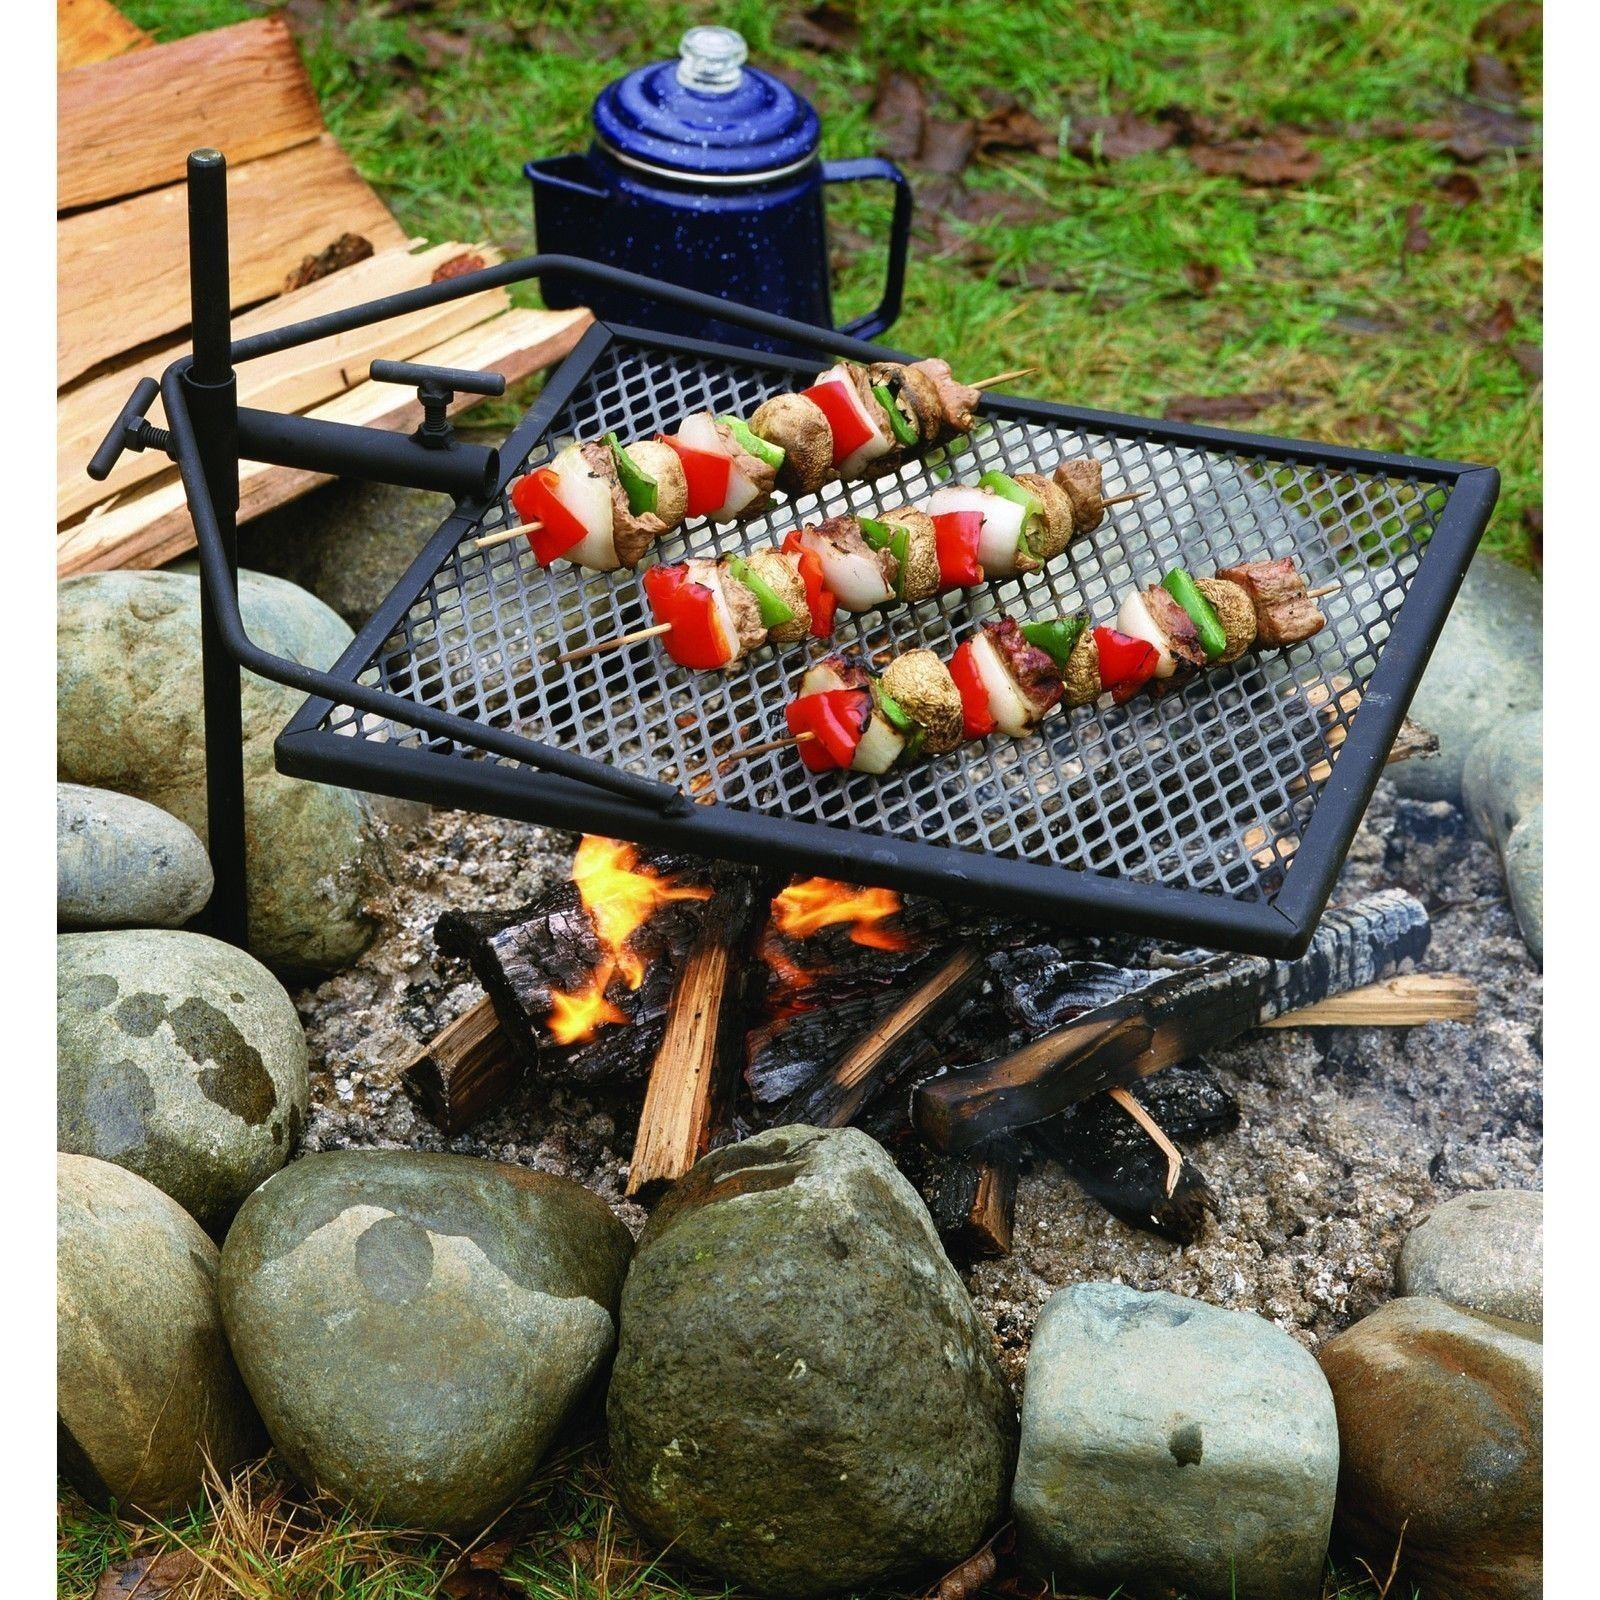 Portable Grill Adjustable Camping Equipment Campfire